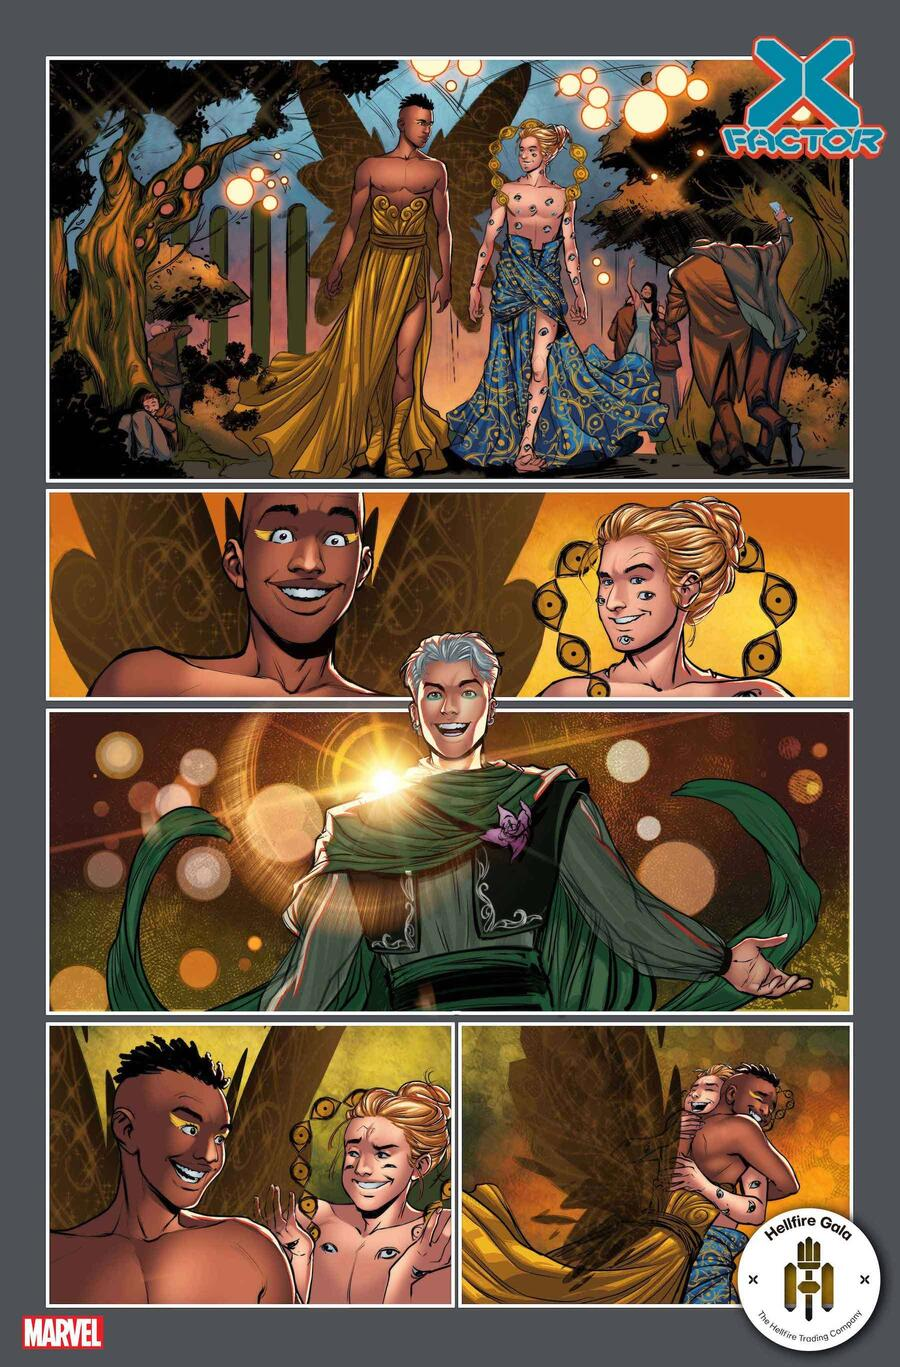 X-FACTOR #10 preview art by Lucas Werneck and Israel Silva